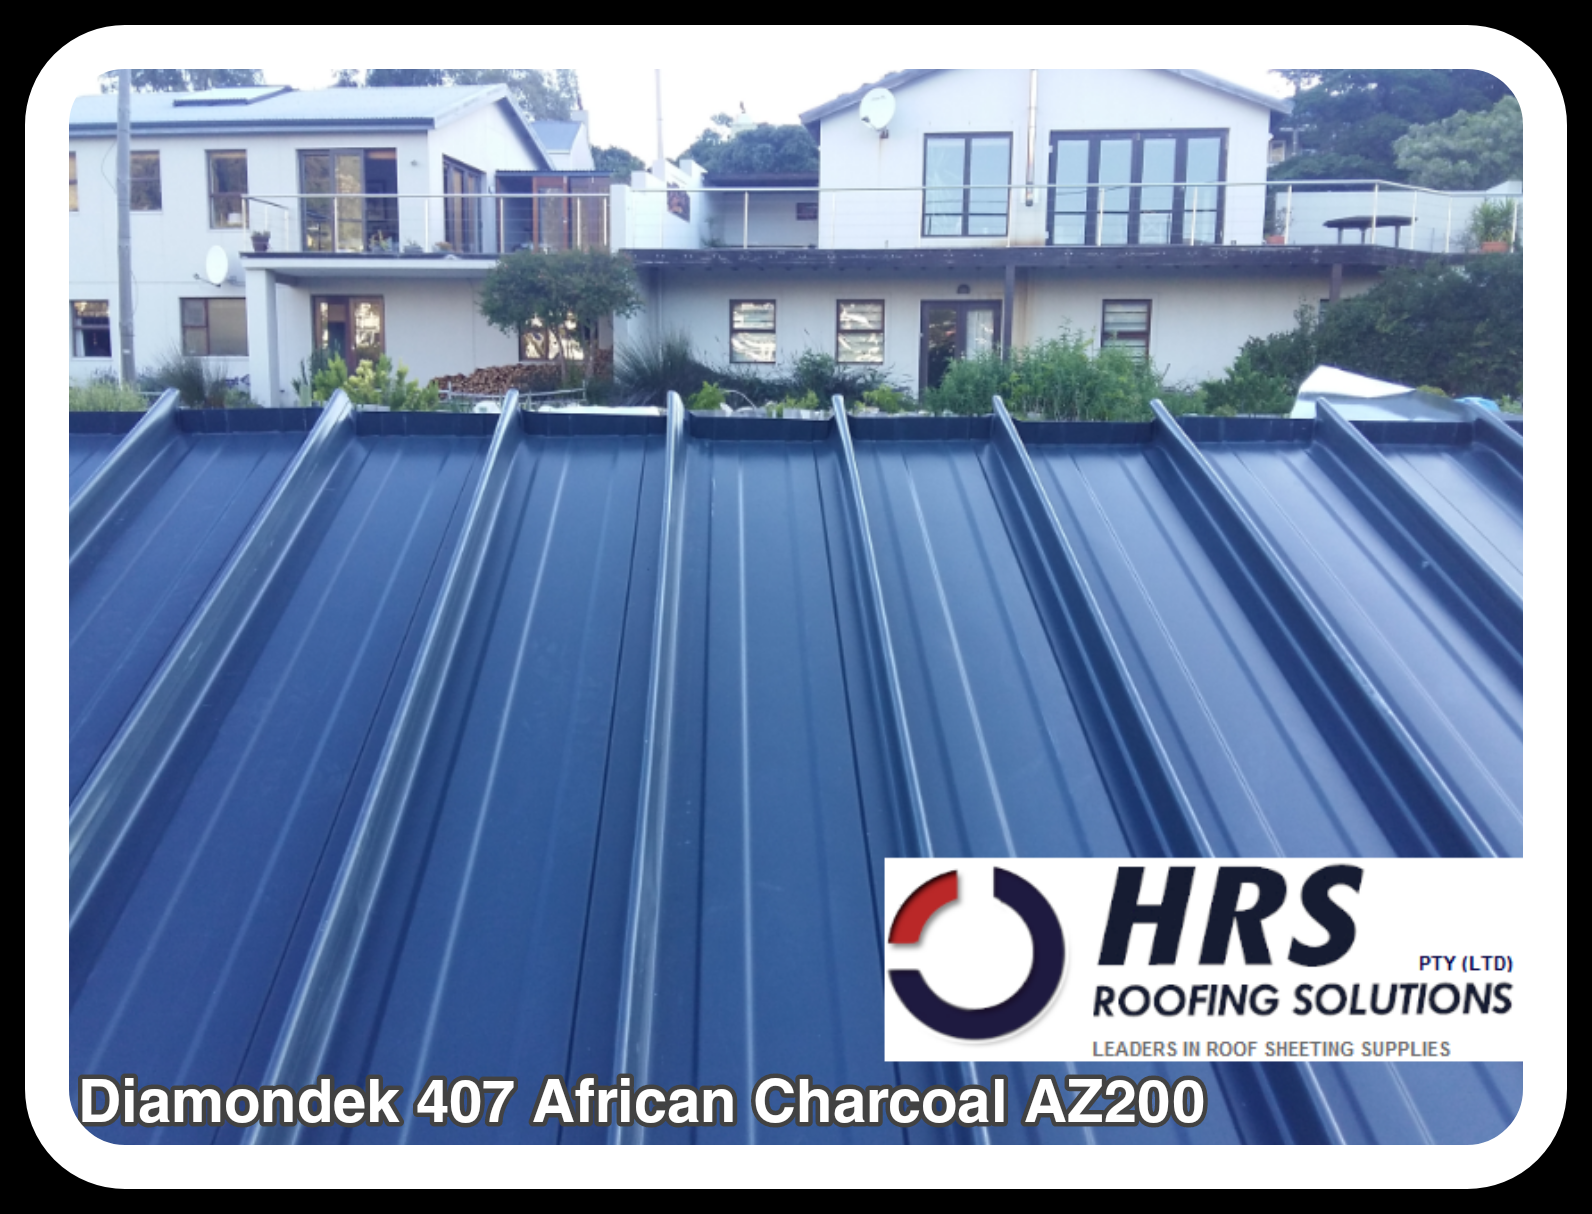 Diamondek 407 Clip Lock Roof Sheeting hrs roofing solutions cape Town Durbanville - Roofing Gallery